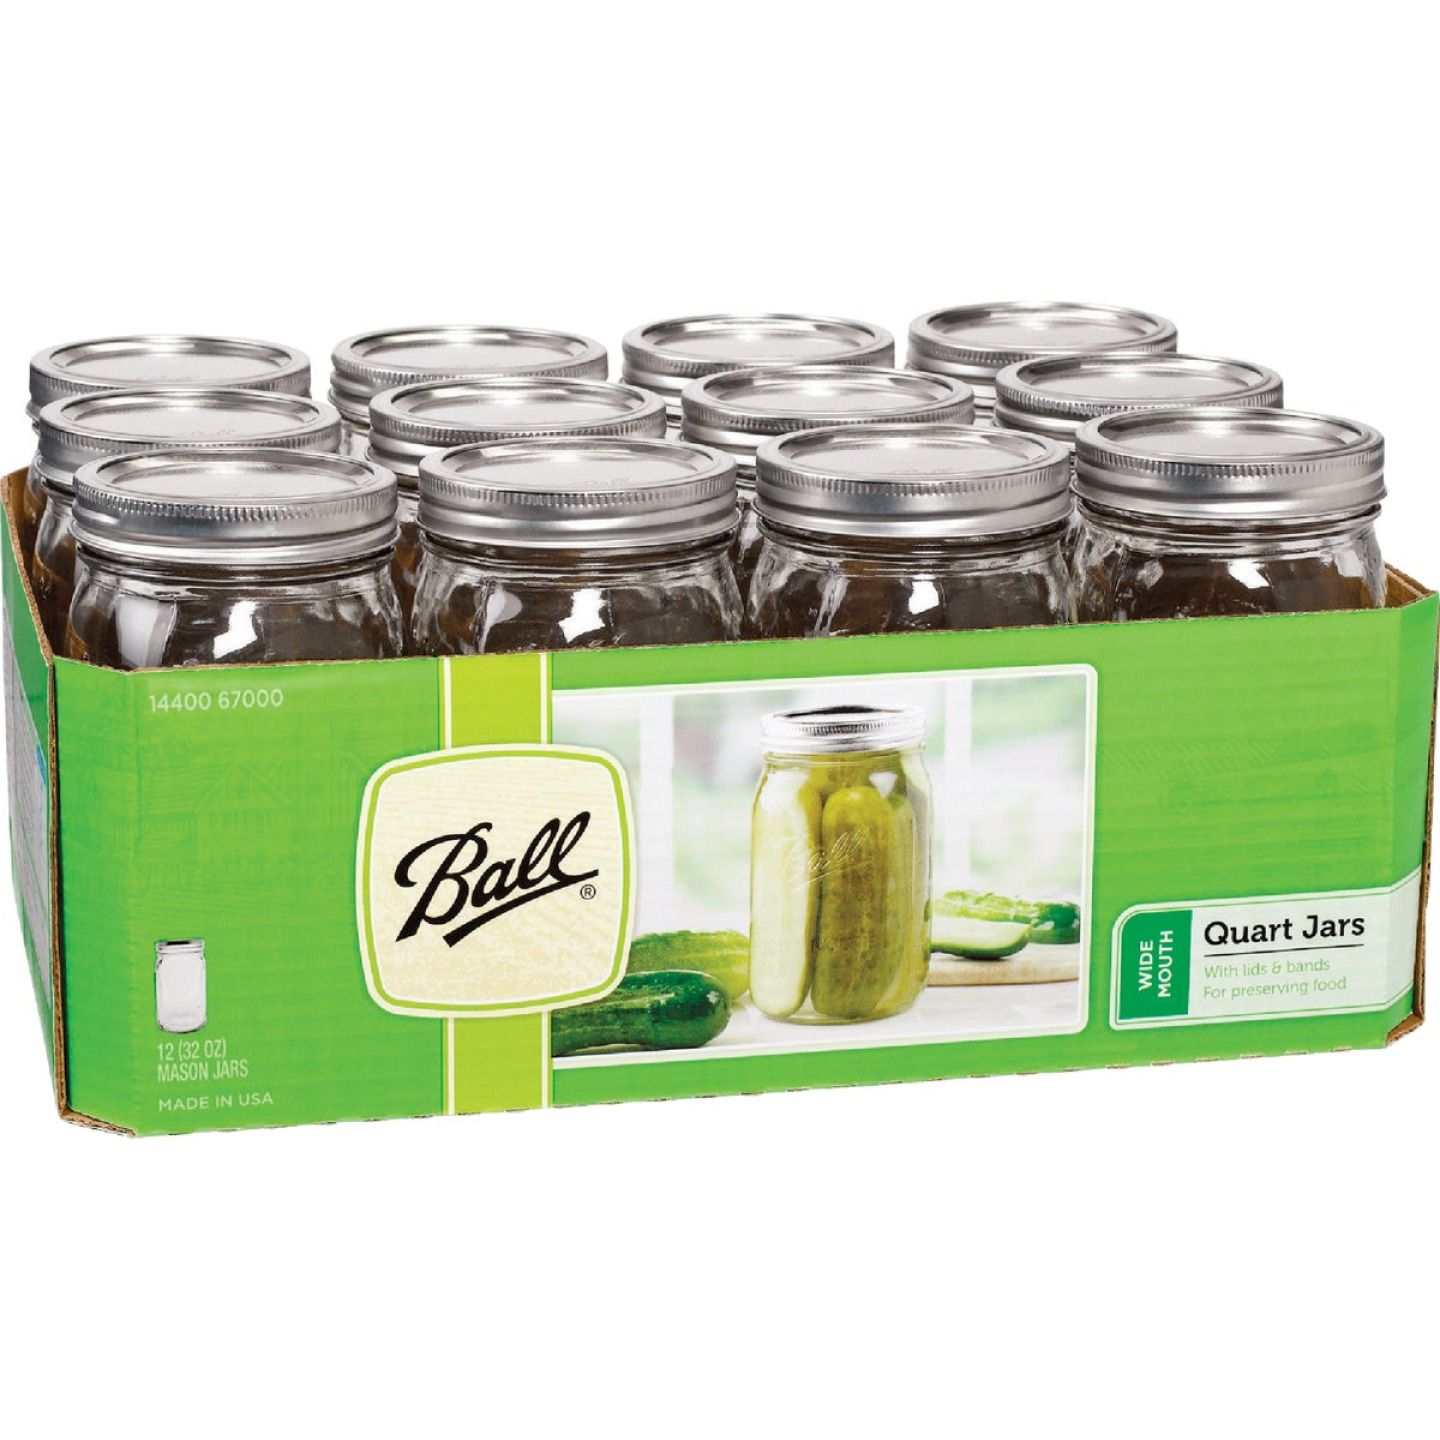 Ball 1 Quart Wide Mouth Mason Canning Jar (12-Count) Image 1